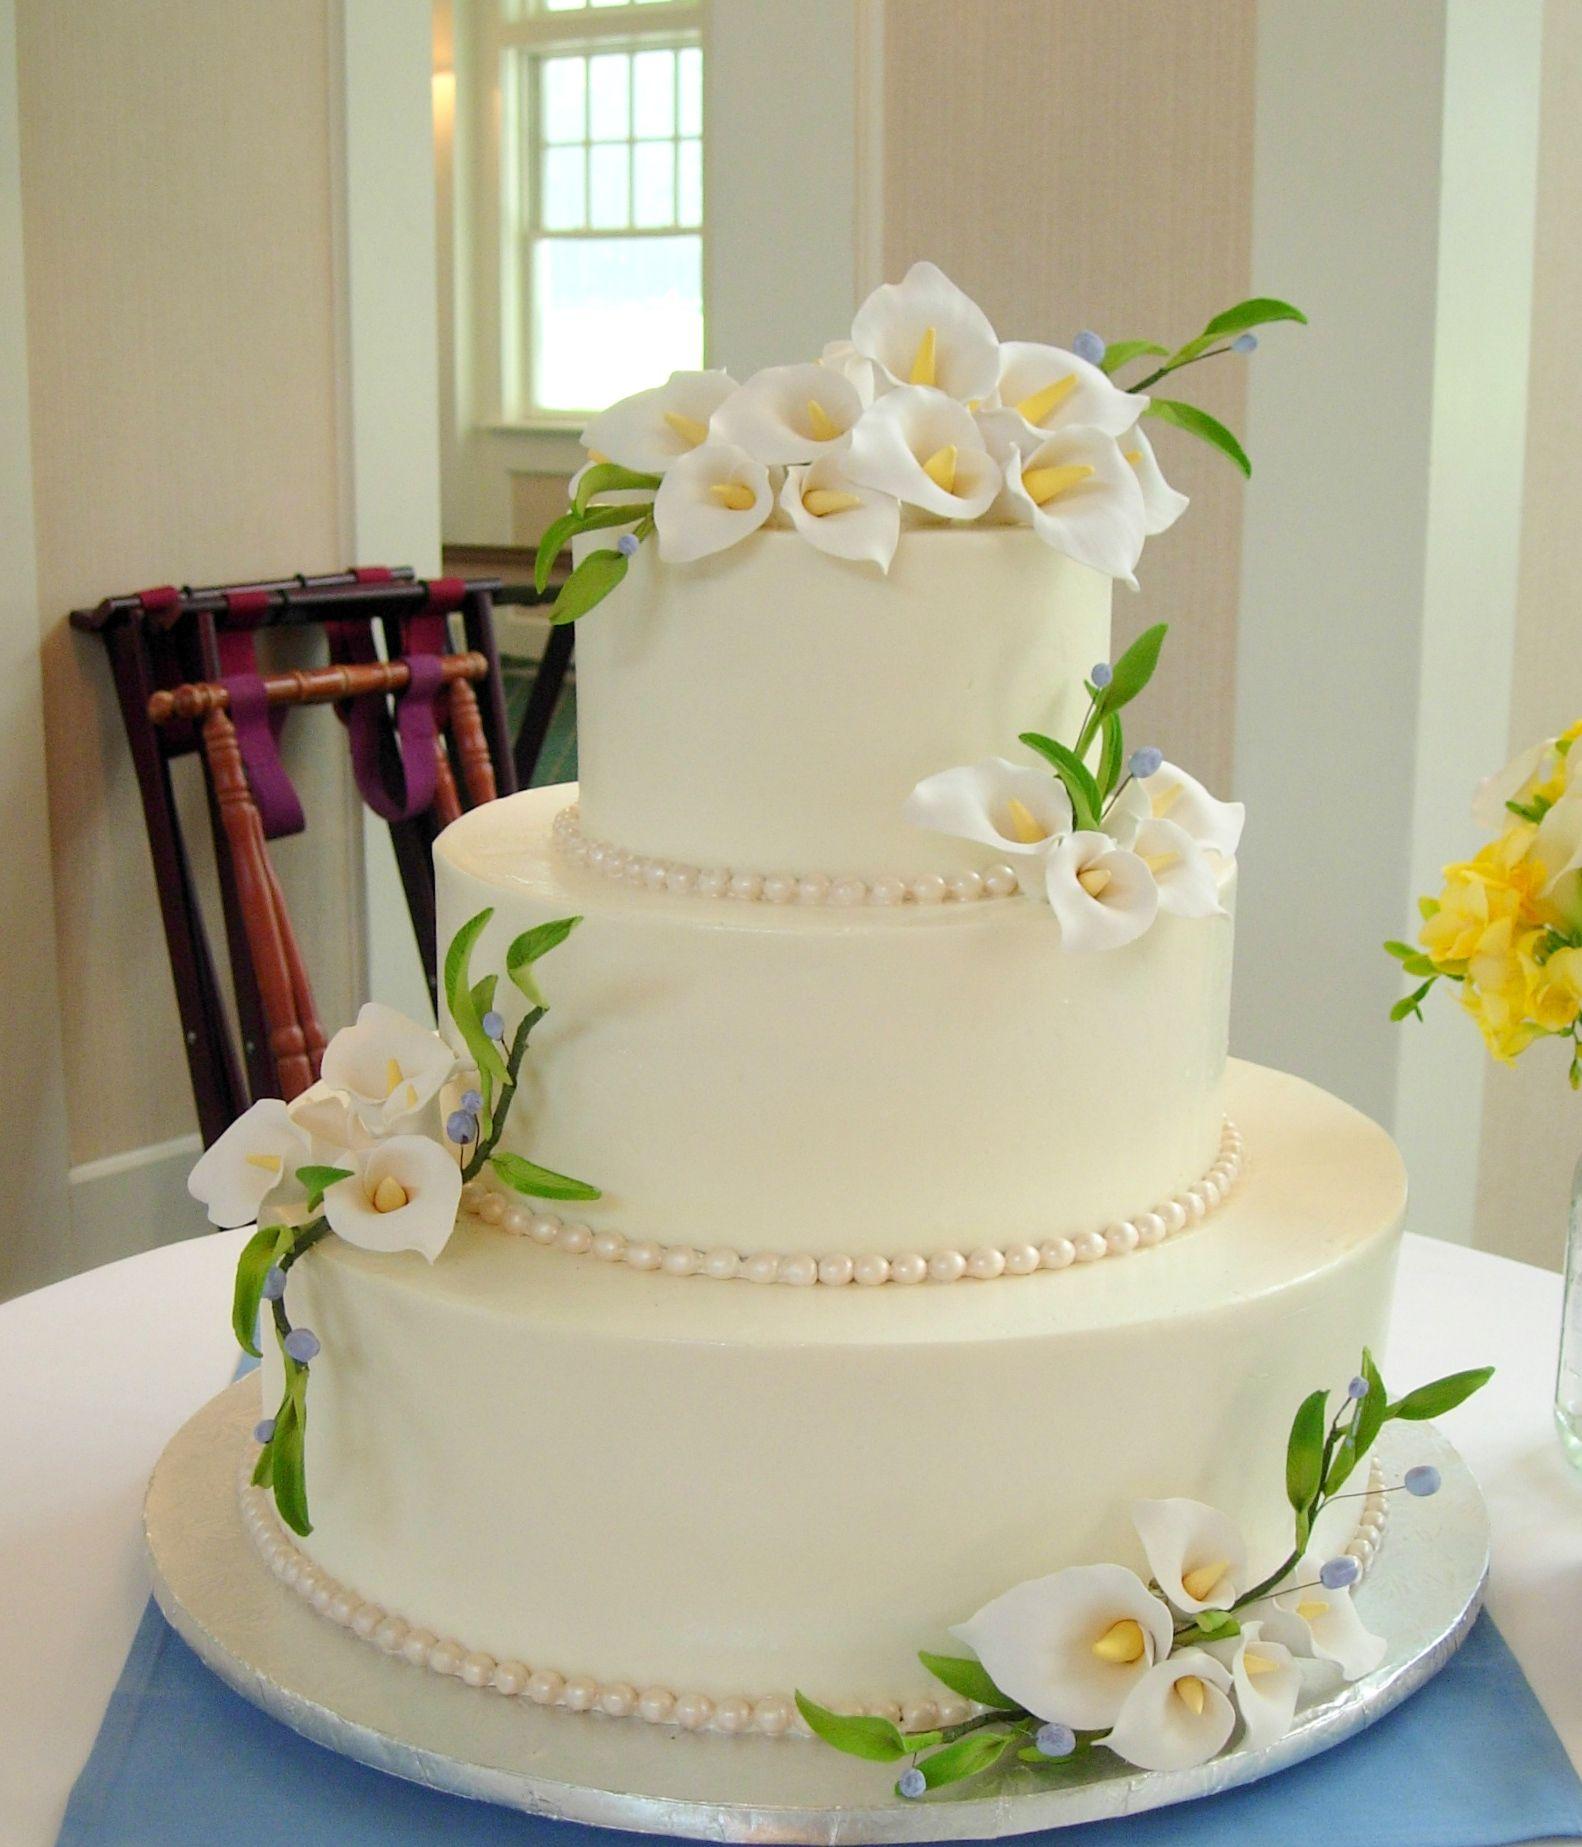 wedding cakes northern new jersey%0A Buttercream Wedding Cake with Calla Lily and Berries  Pinehills Country  Club www artisanbakeshop